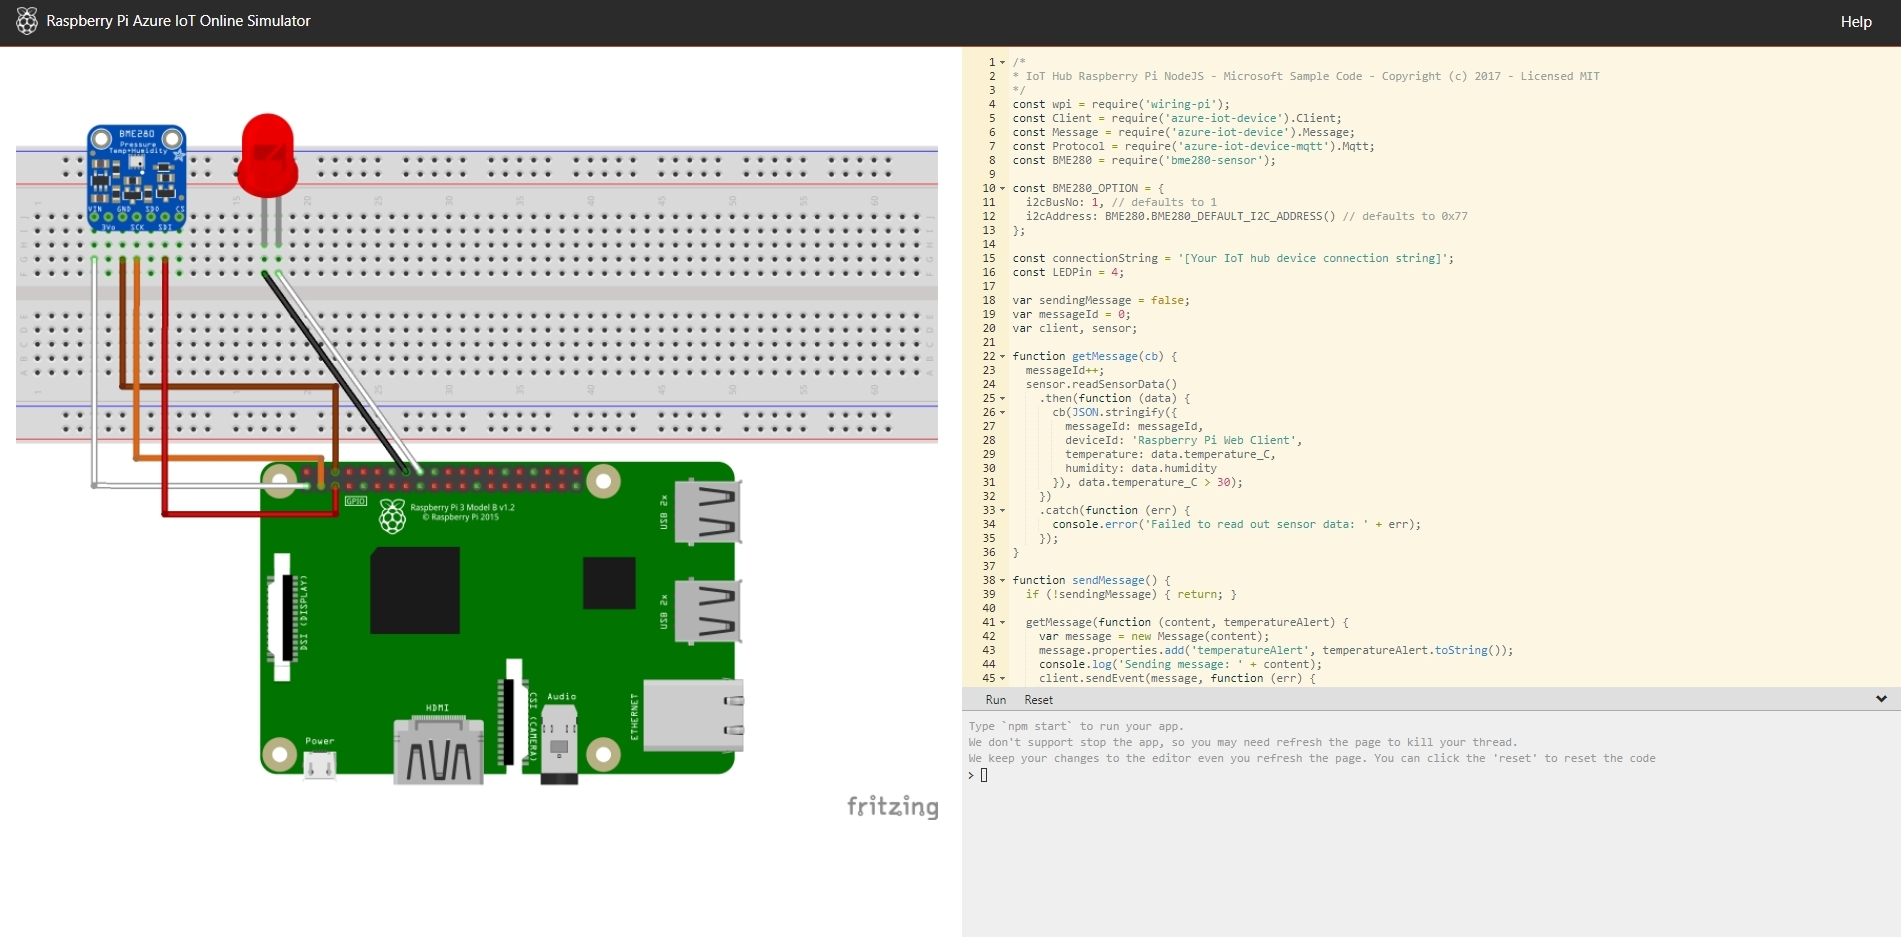 Raspberry Pi Simulator Microsoft Creates Online Tool For Best Circuit Prototyping Projects